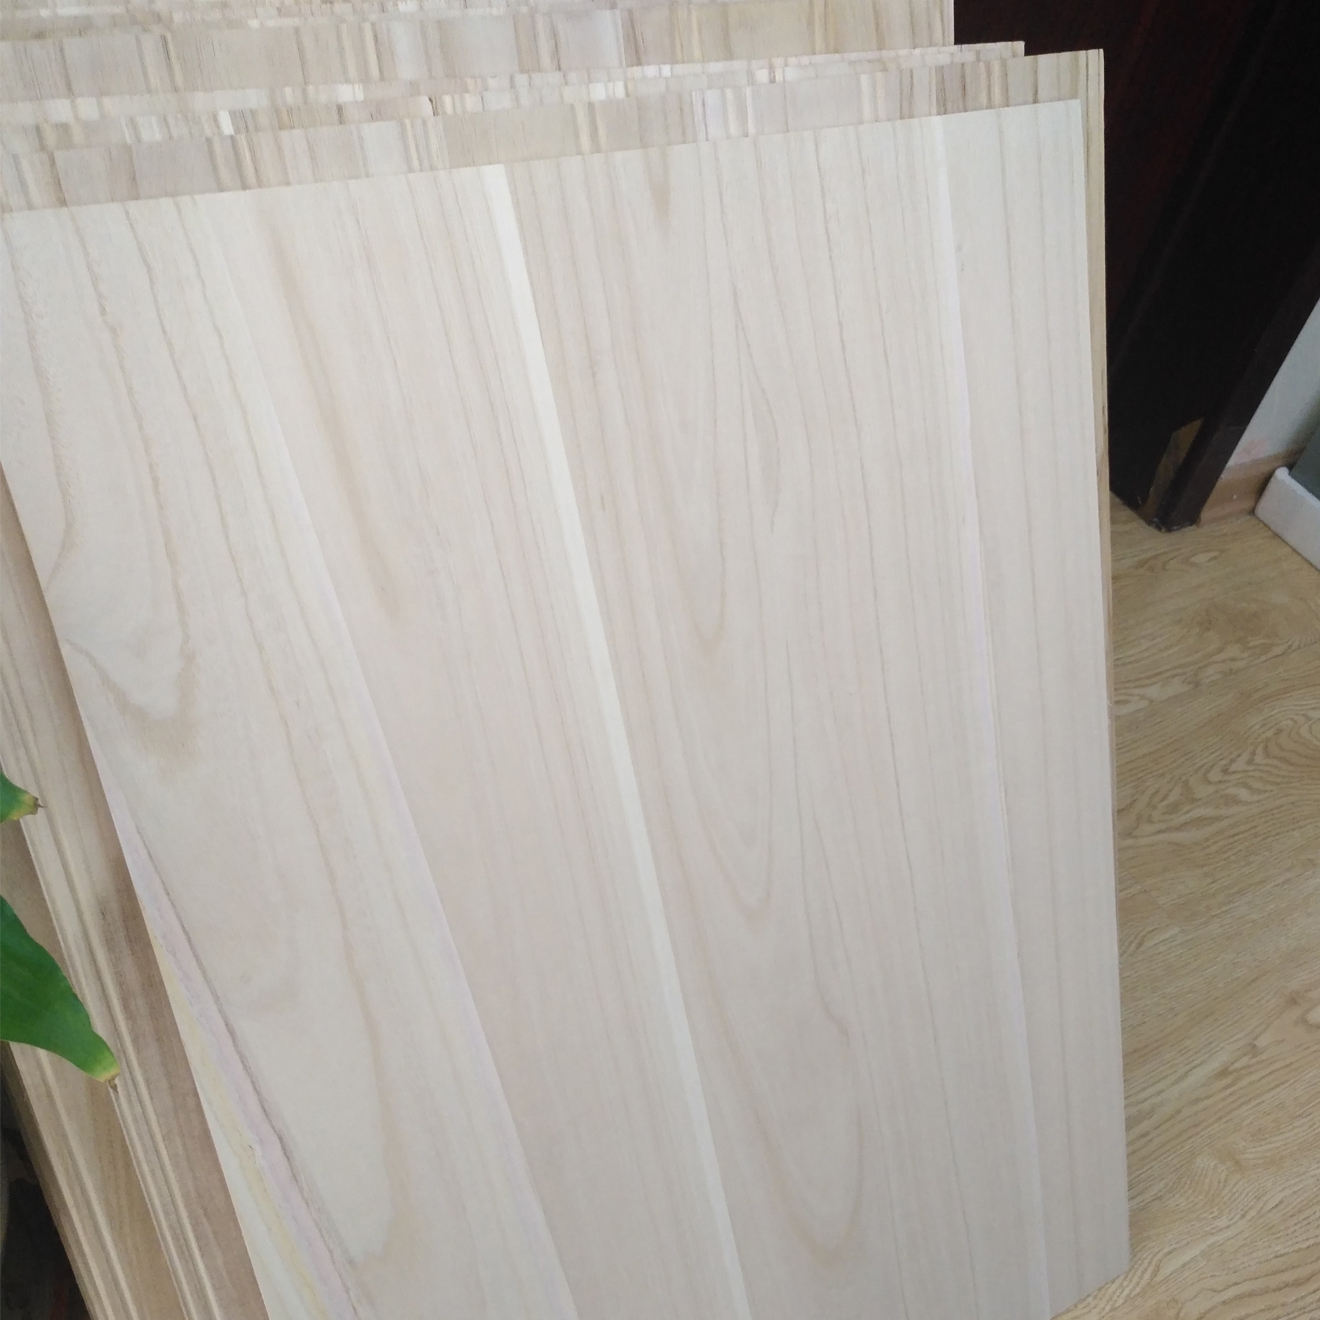 Rough Sawn Lumber for Sale Paulownia Lumber Siding